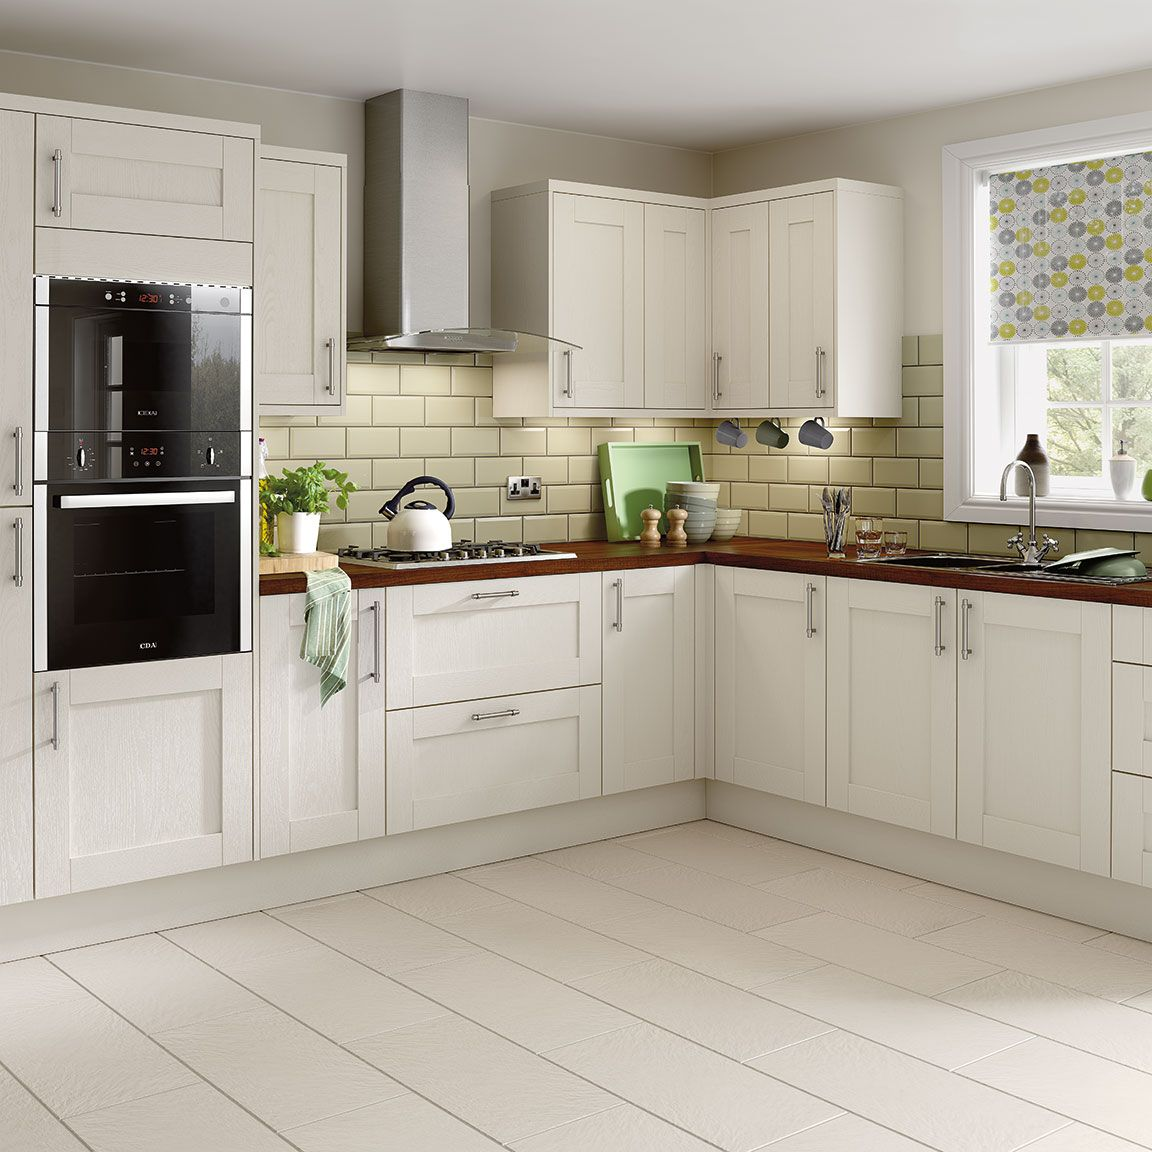 Simply hygena southfield ivory kitchen kitchen for Home base kitchen units